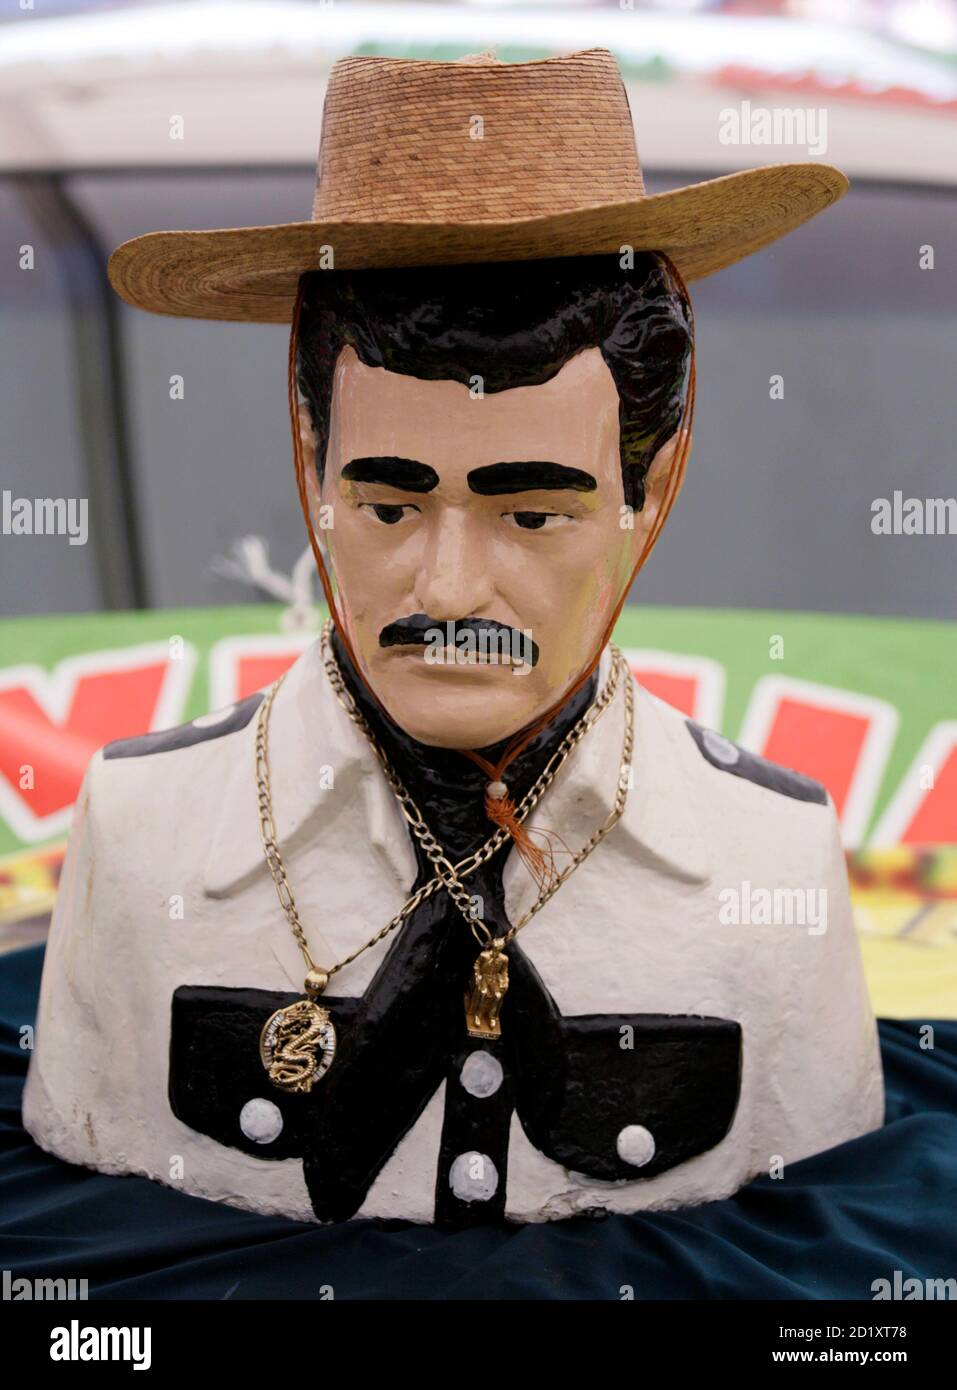 Jesus Malverde Wallpaper : jesus, malverde, wallpaper, Jesus, Malverde, Resolution, Stock, Photography, Images, Alamy